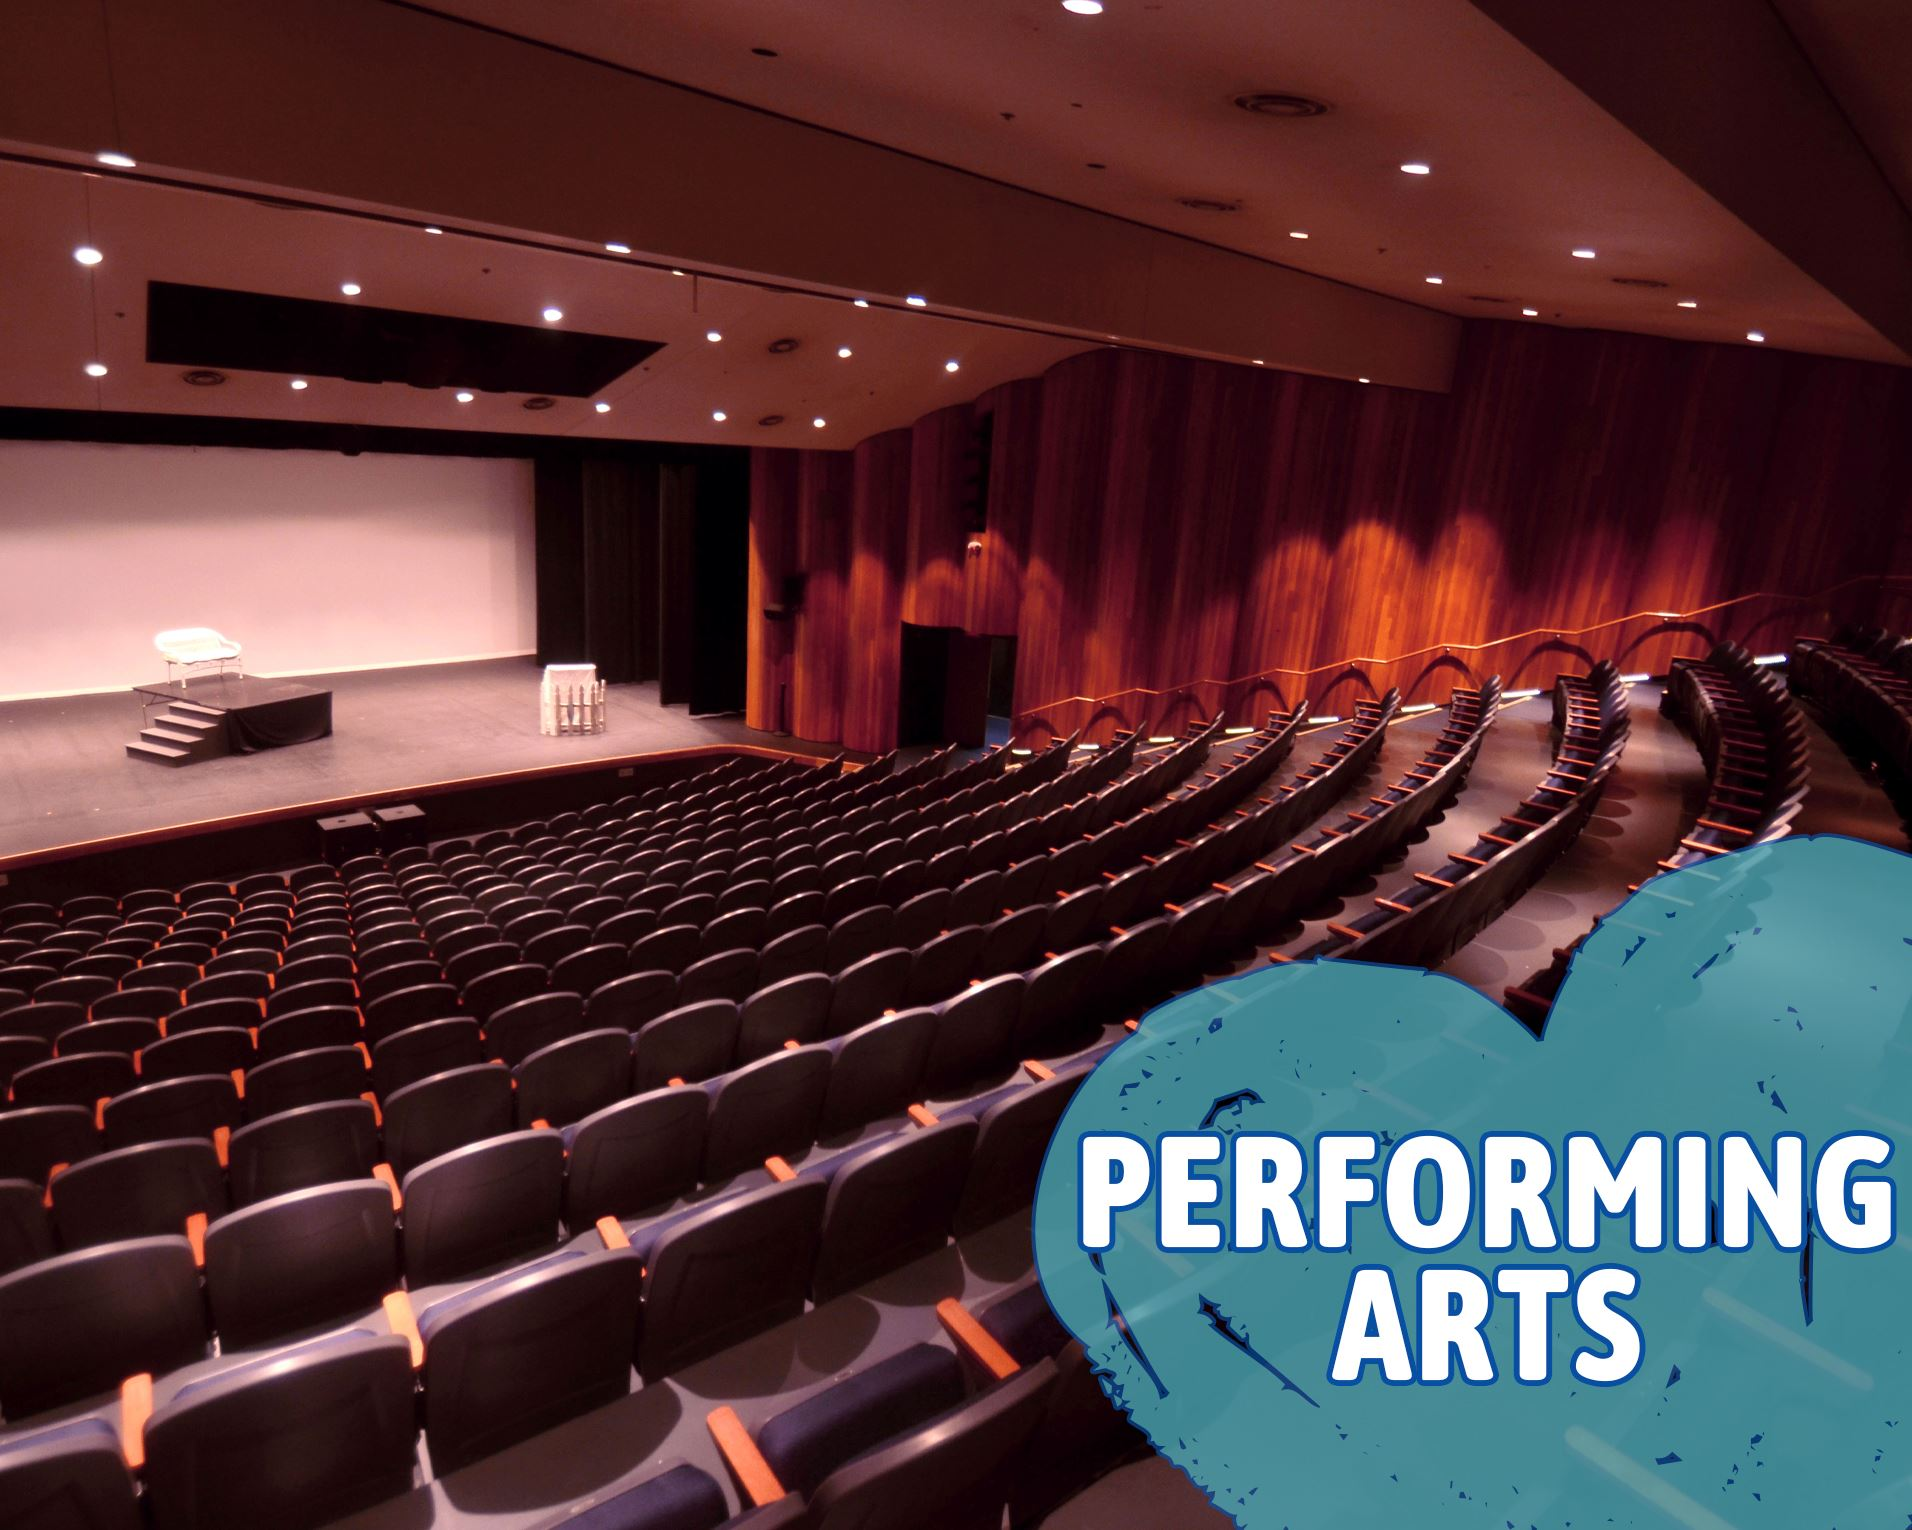 Performing Arts Bayou Theater Opens in new window